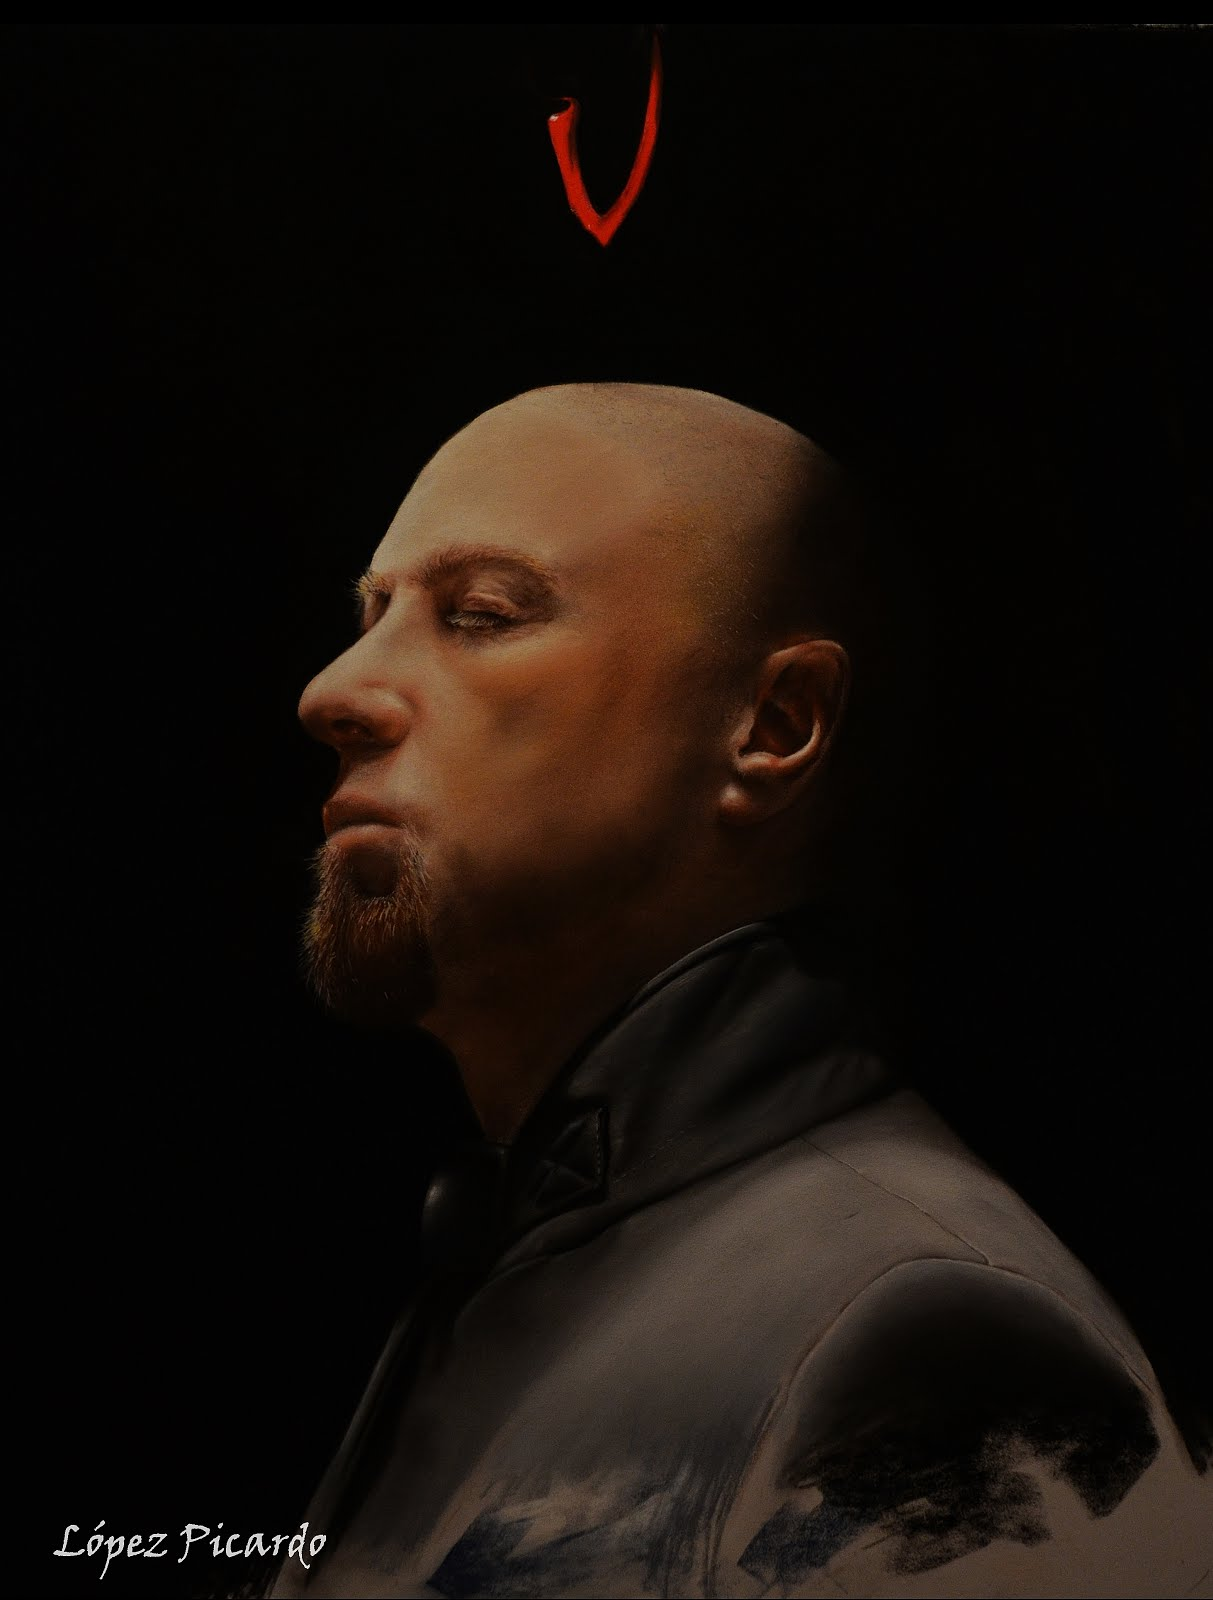 López Picardo Artwork